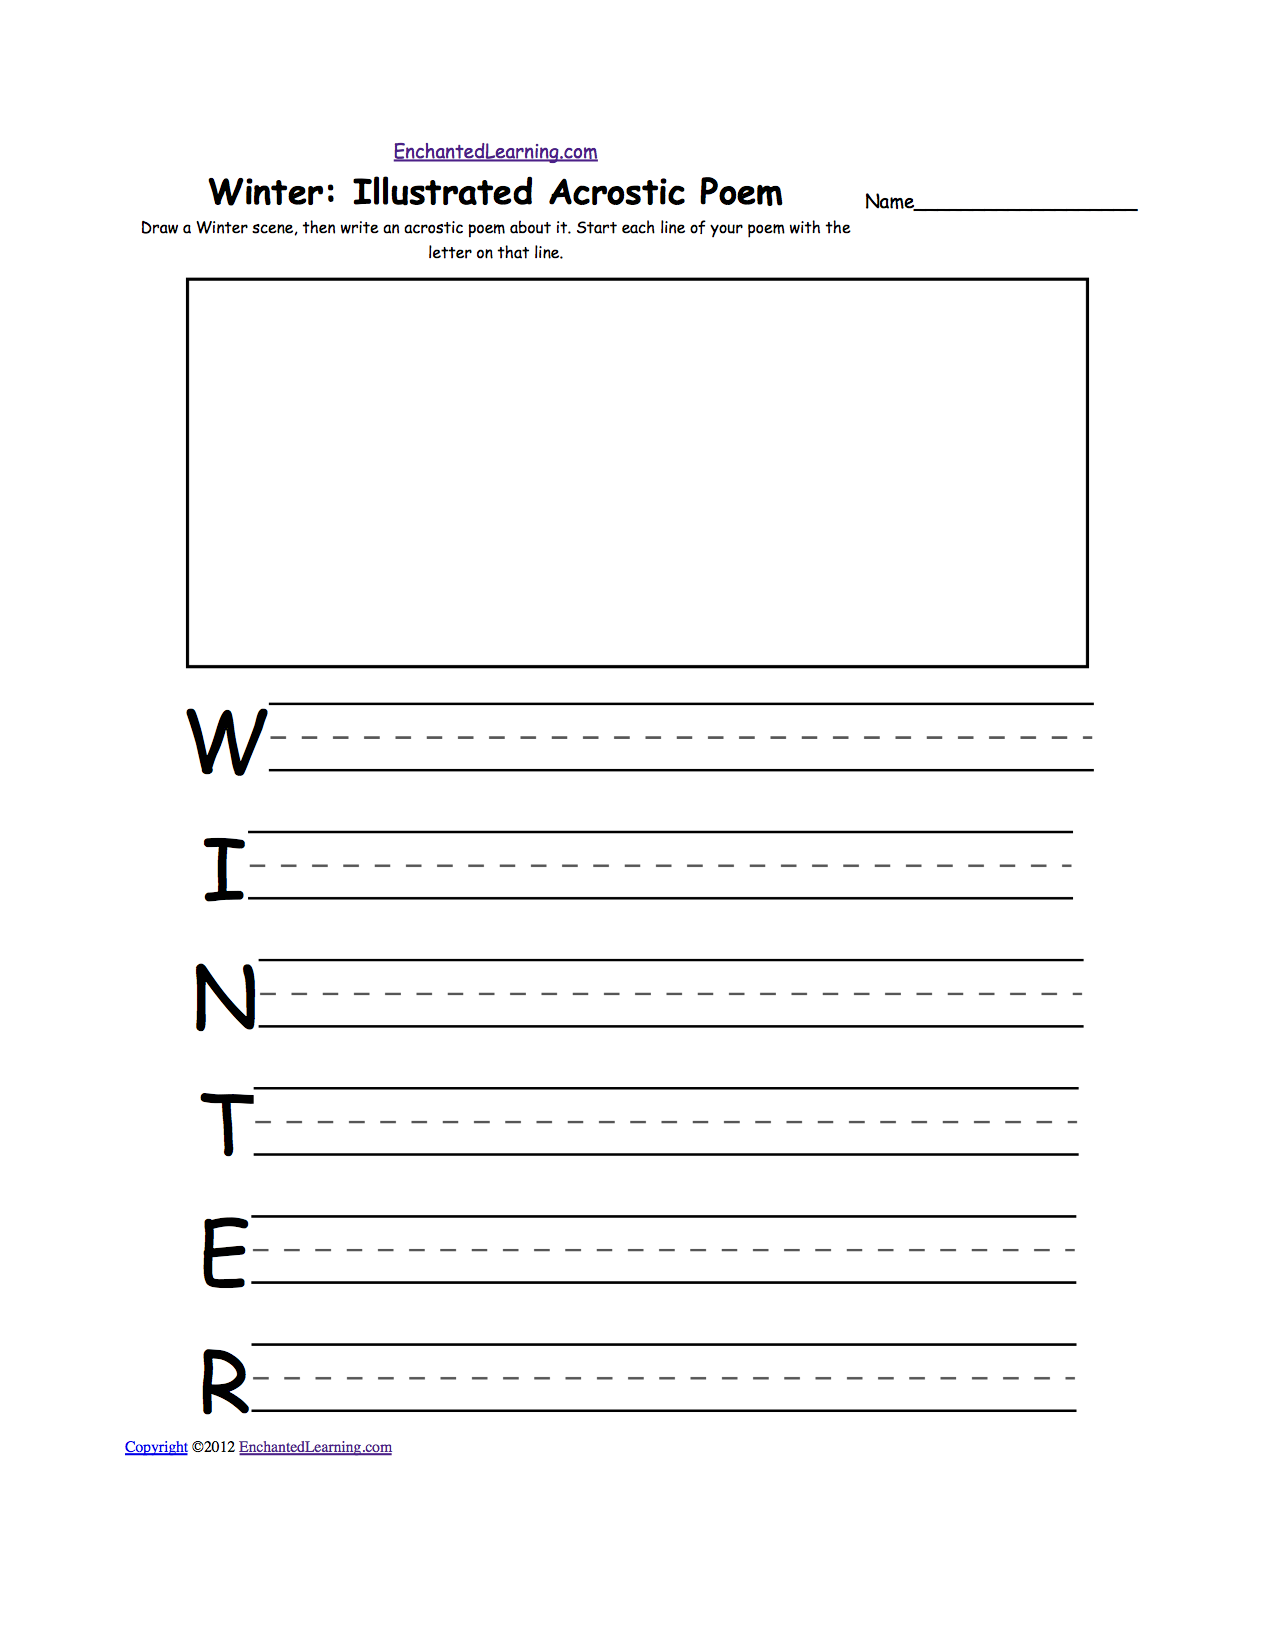 Printables Writing Poetry Worksheets writing worksheets winter k 3 theme page at enchantedlearning com draw a scene then write an acrostic poem about it start each line of your with the letter on that line